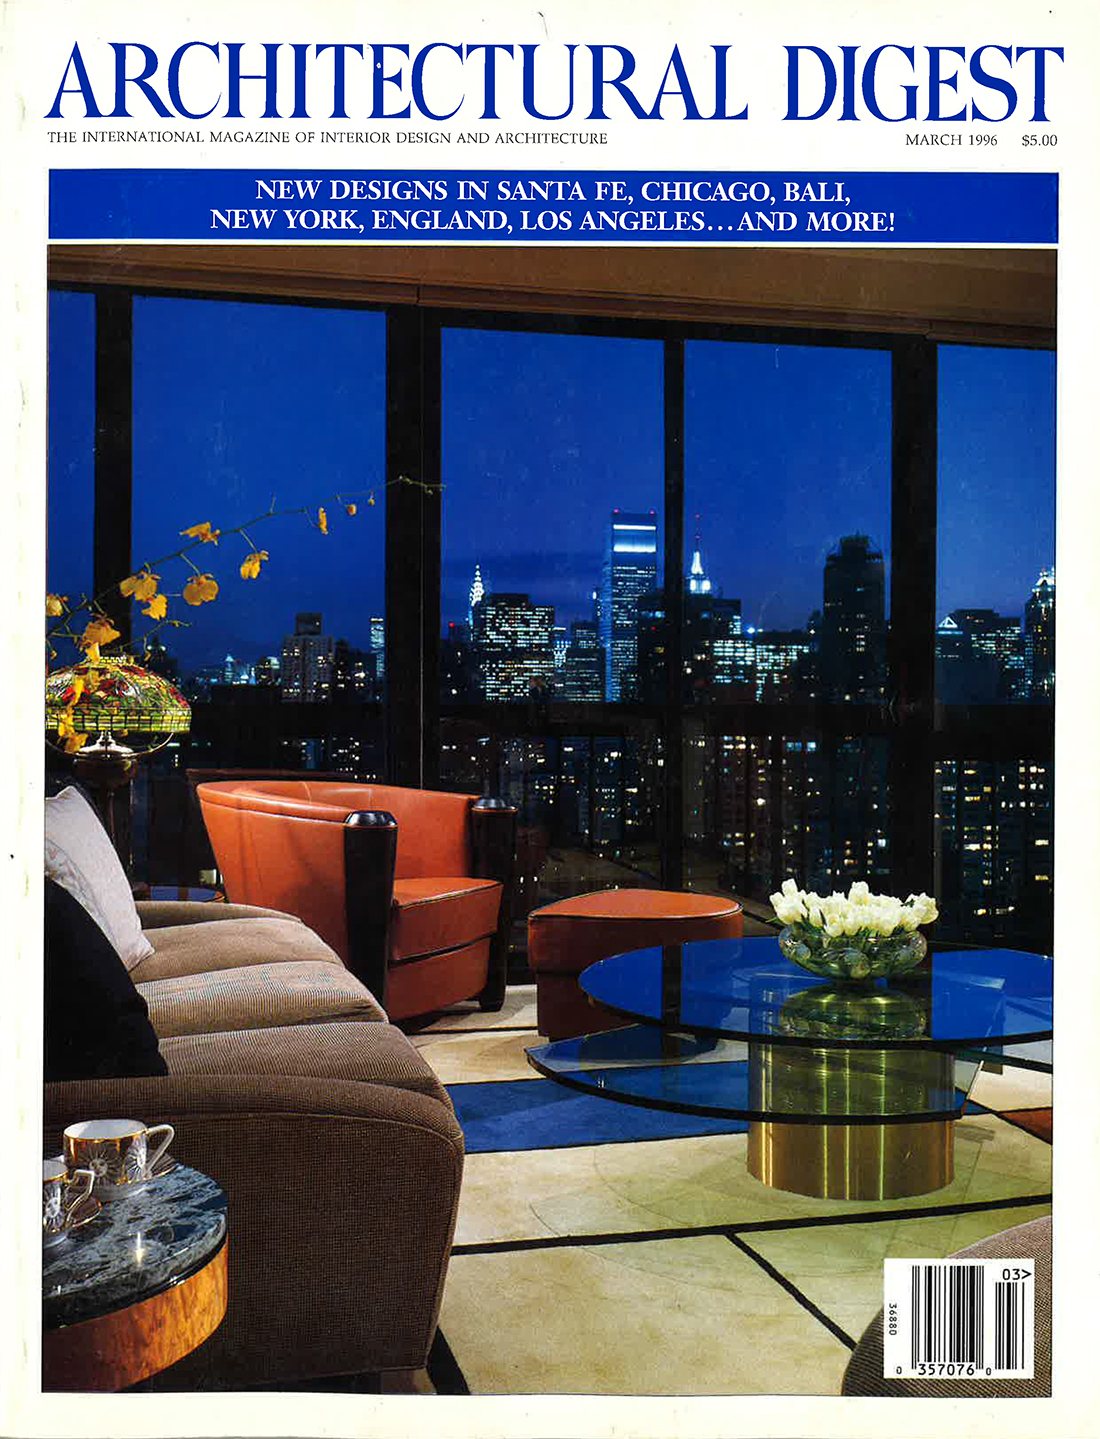 Architectural Digest - March 1996-1 copy.jpg